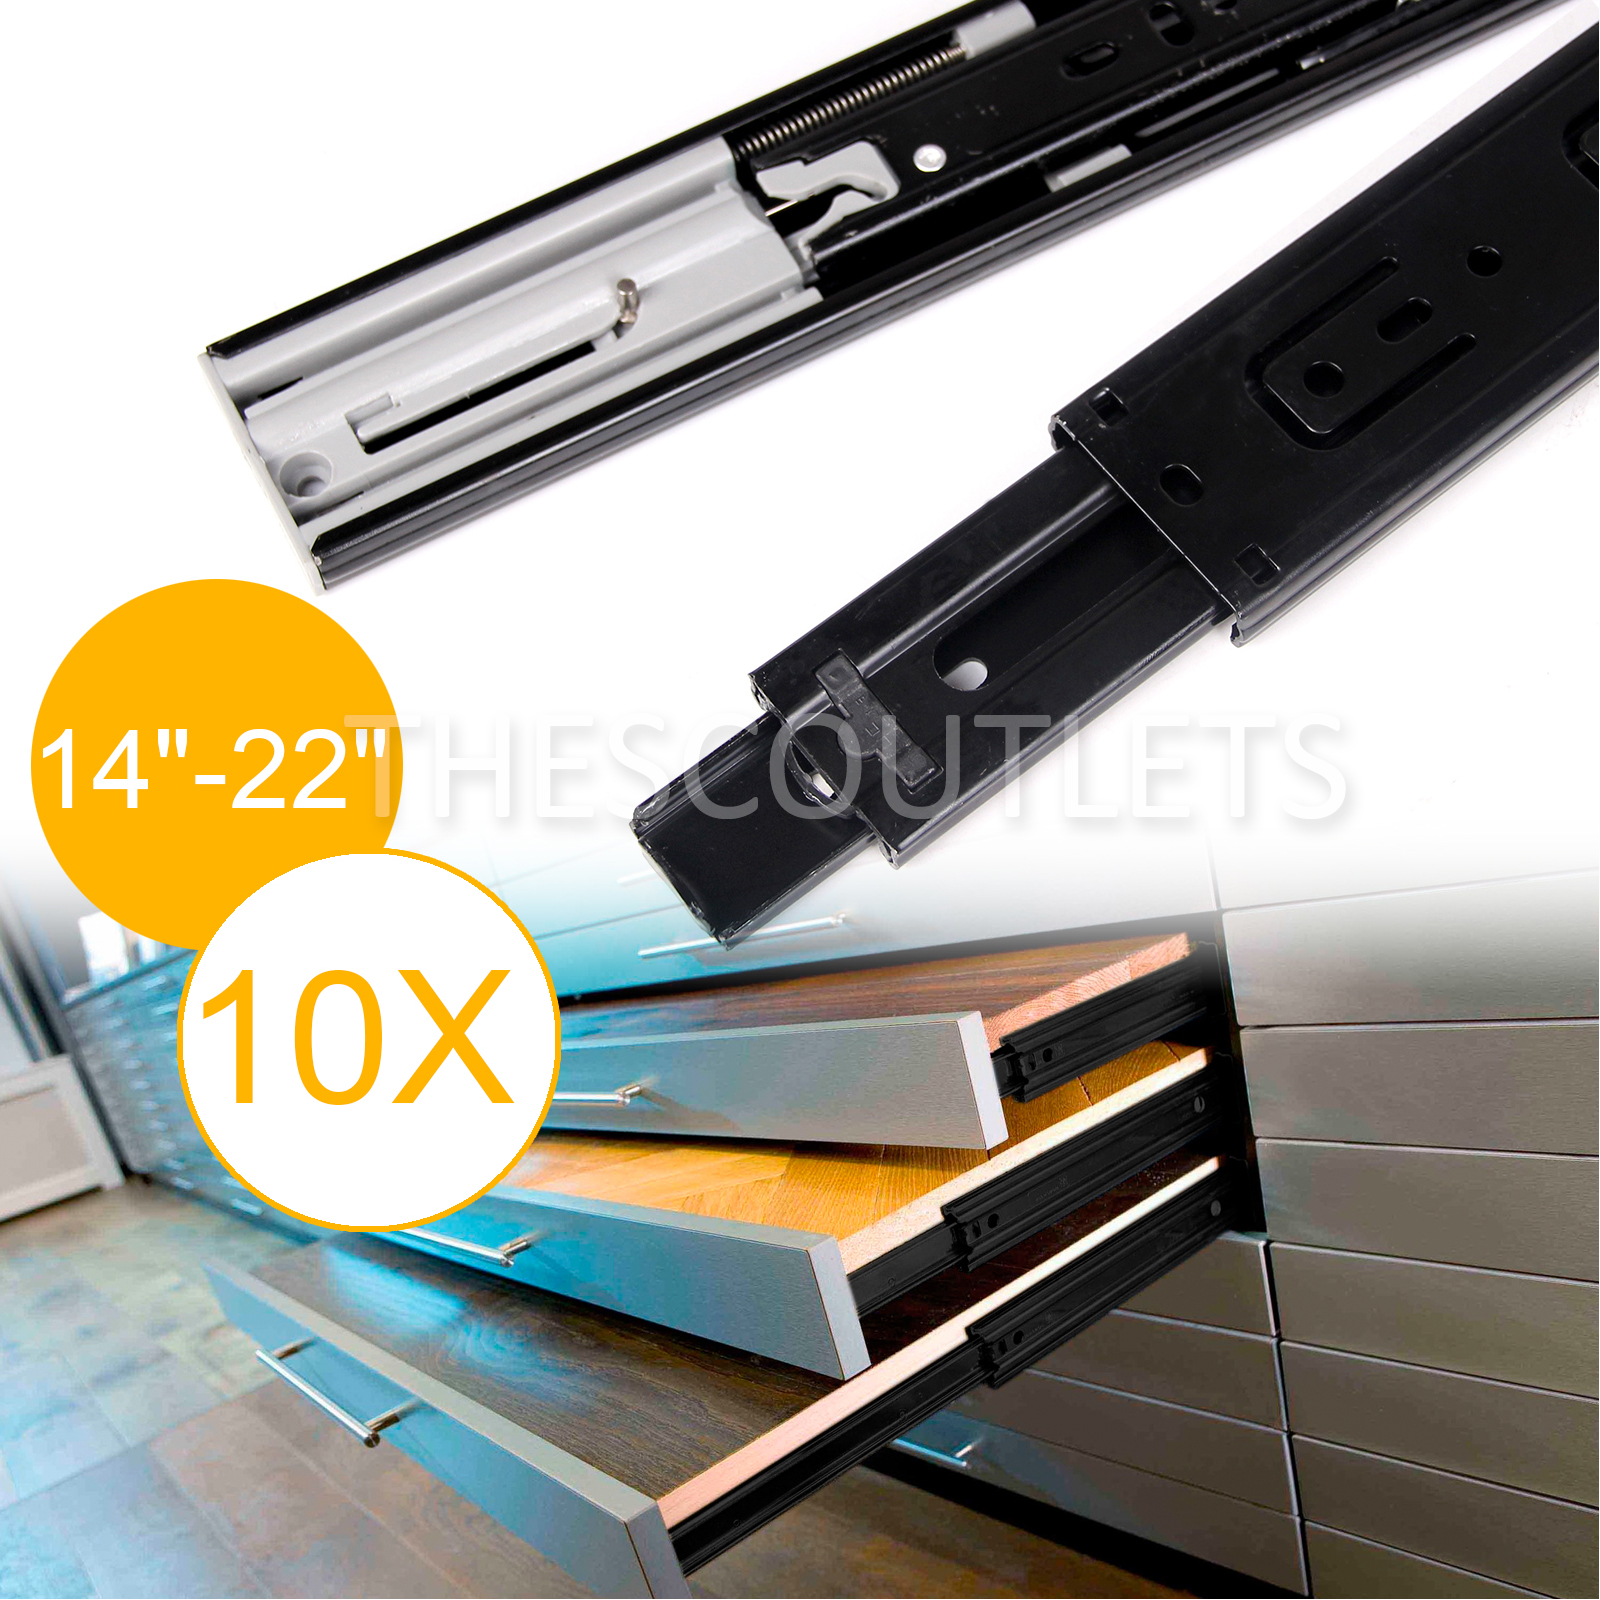 ball bearing full extension 14 22 soft close drawer slides 10 pairs value pack. Black Bedroom Furniture Sets. Home Design Ideas